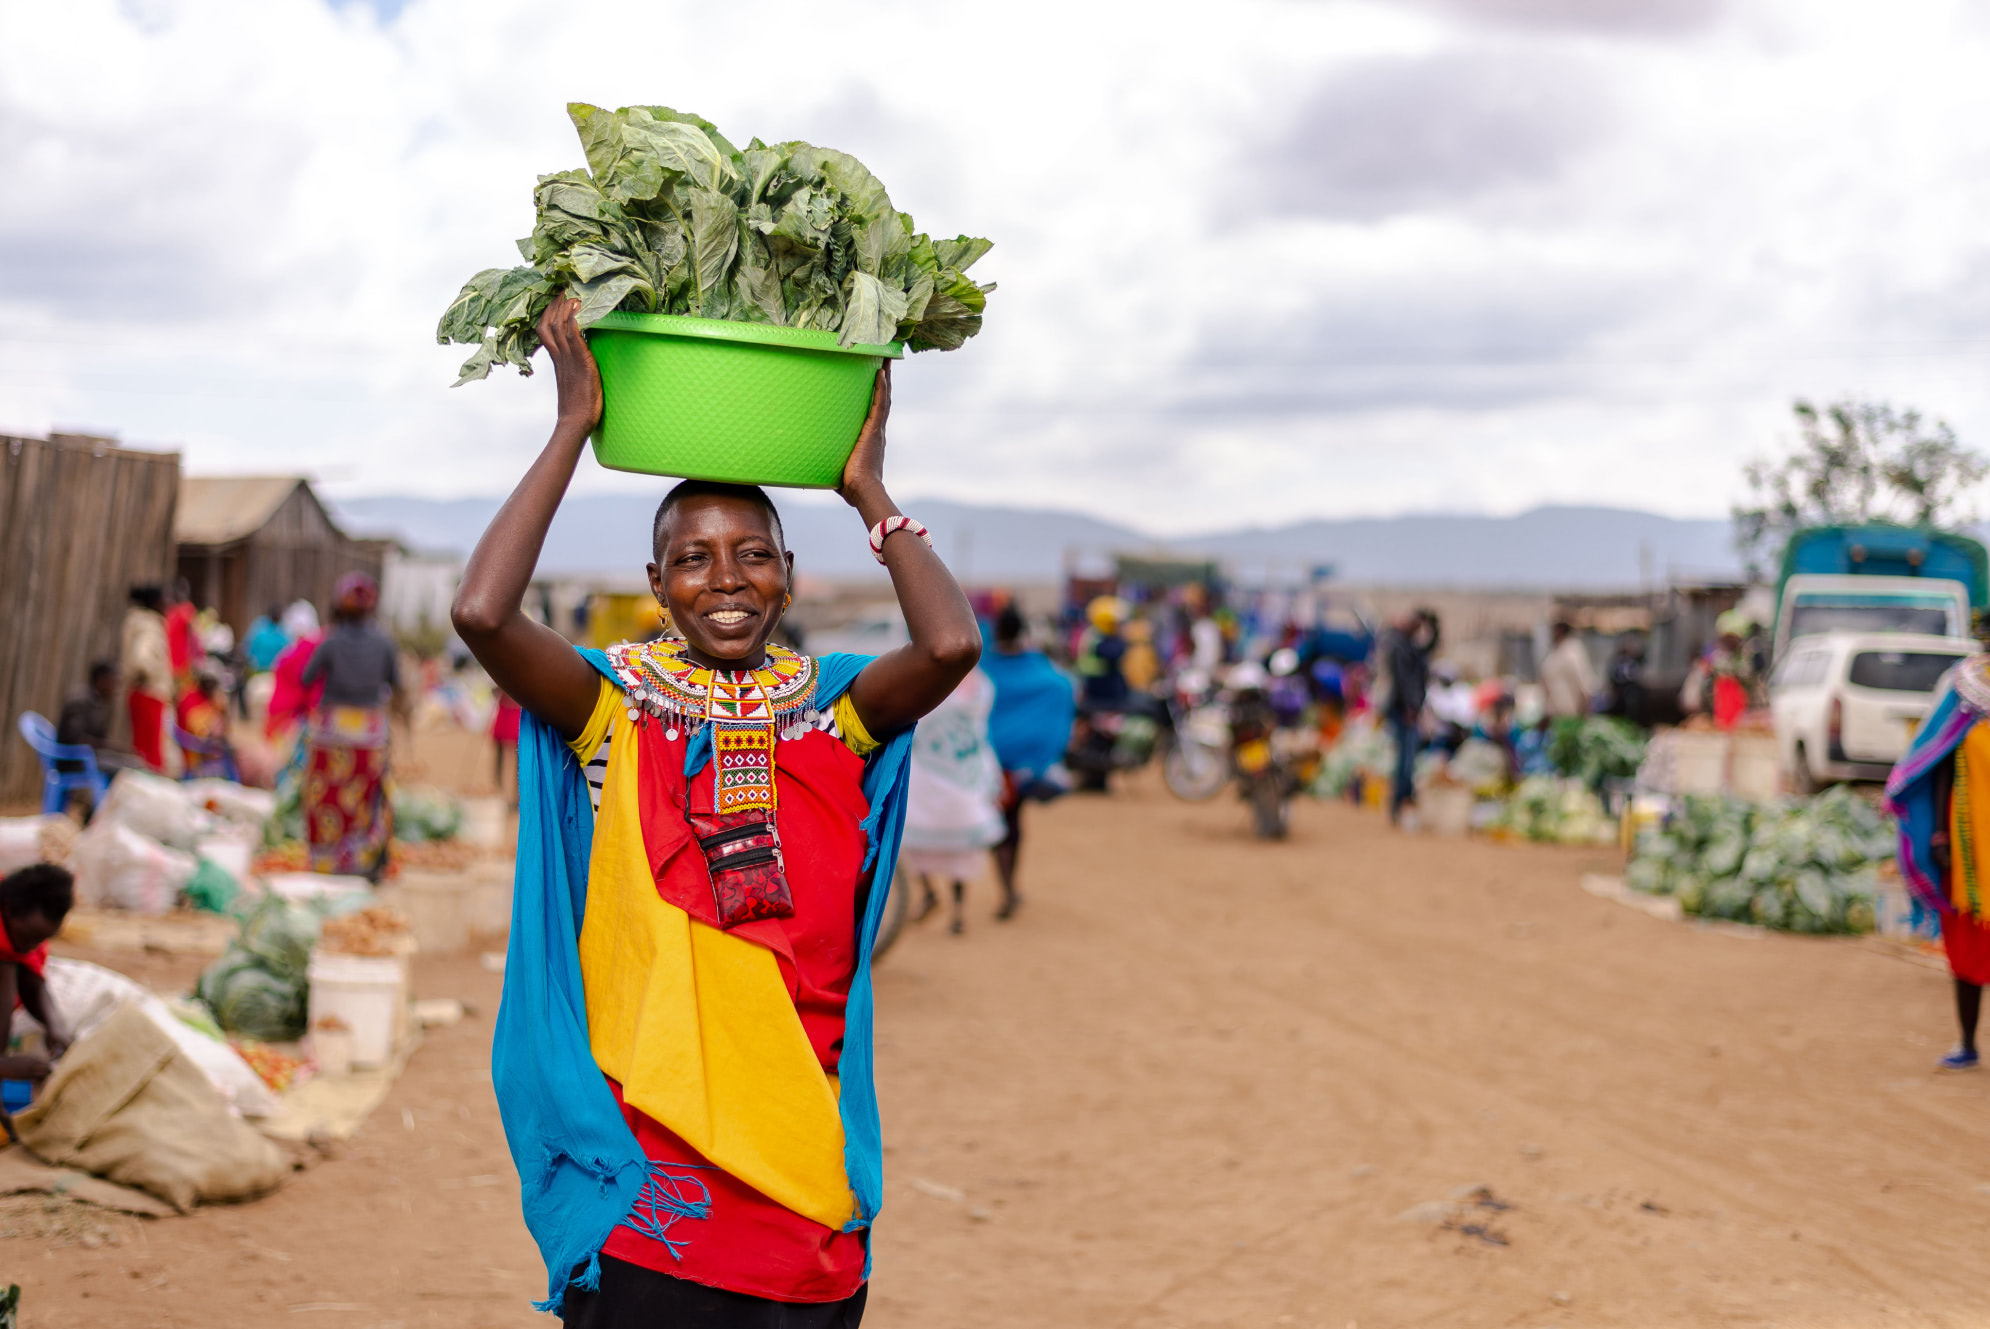 A woman in Kenya holding a basket of vegetables.